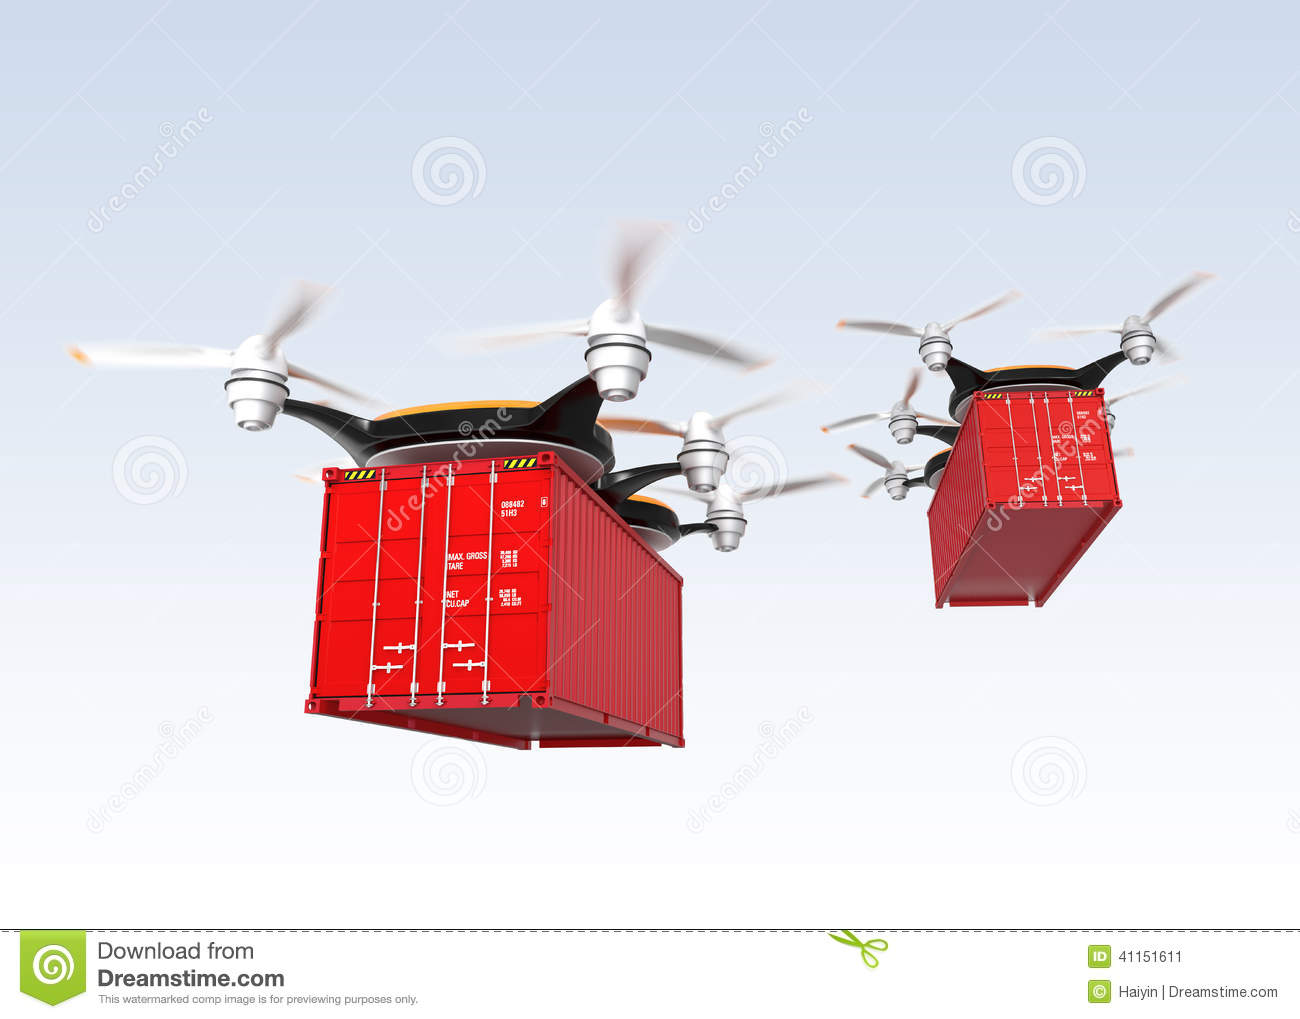 6 propeller drone with Stock Photo Two Drone Carrying Cargo Containers Drones Concept Fast Delivery Image41151611 on DJI Phantom 3 Professional additionally Luftwaffe Flight 1948 278089976 as well 900mm 6 Axis Folding Carbon Fiber 60069858262 in addition Stock Photo Drone Carrying Hamburger Fast Food Delivery Concept Image46632409 as well Stock Illustration Drone Flying Air Quadrocopter Logo Icon Vector Illustration Image66564069.